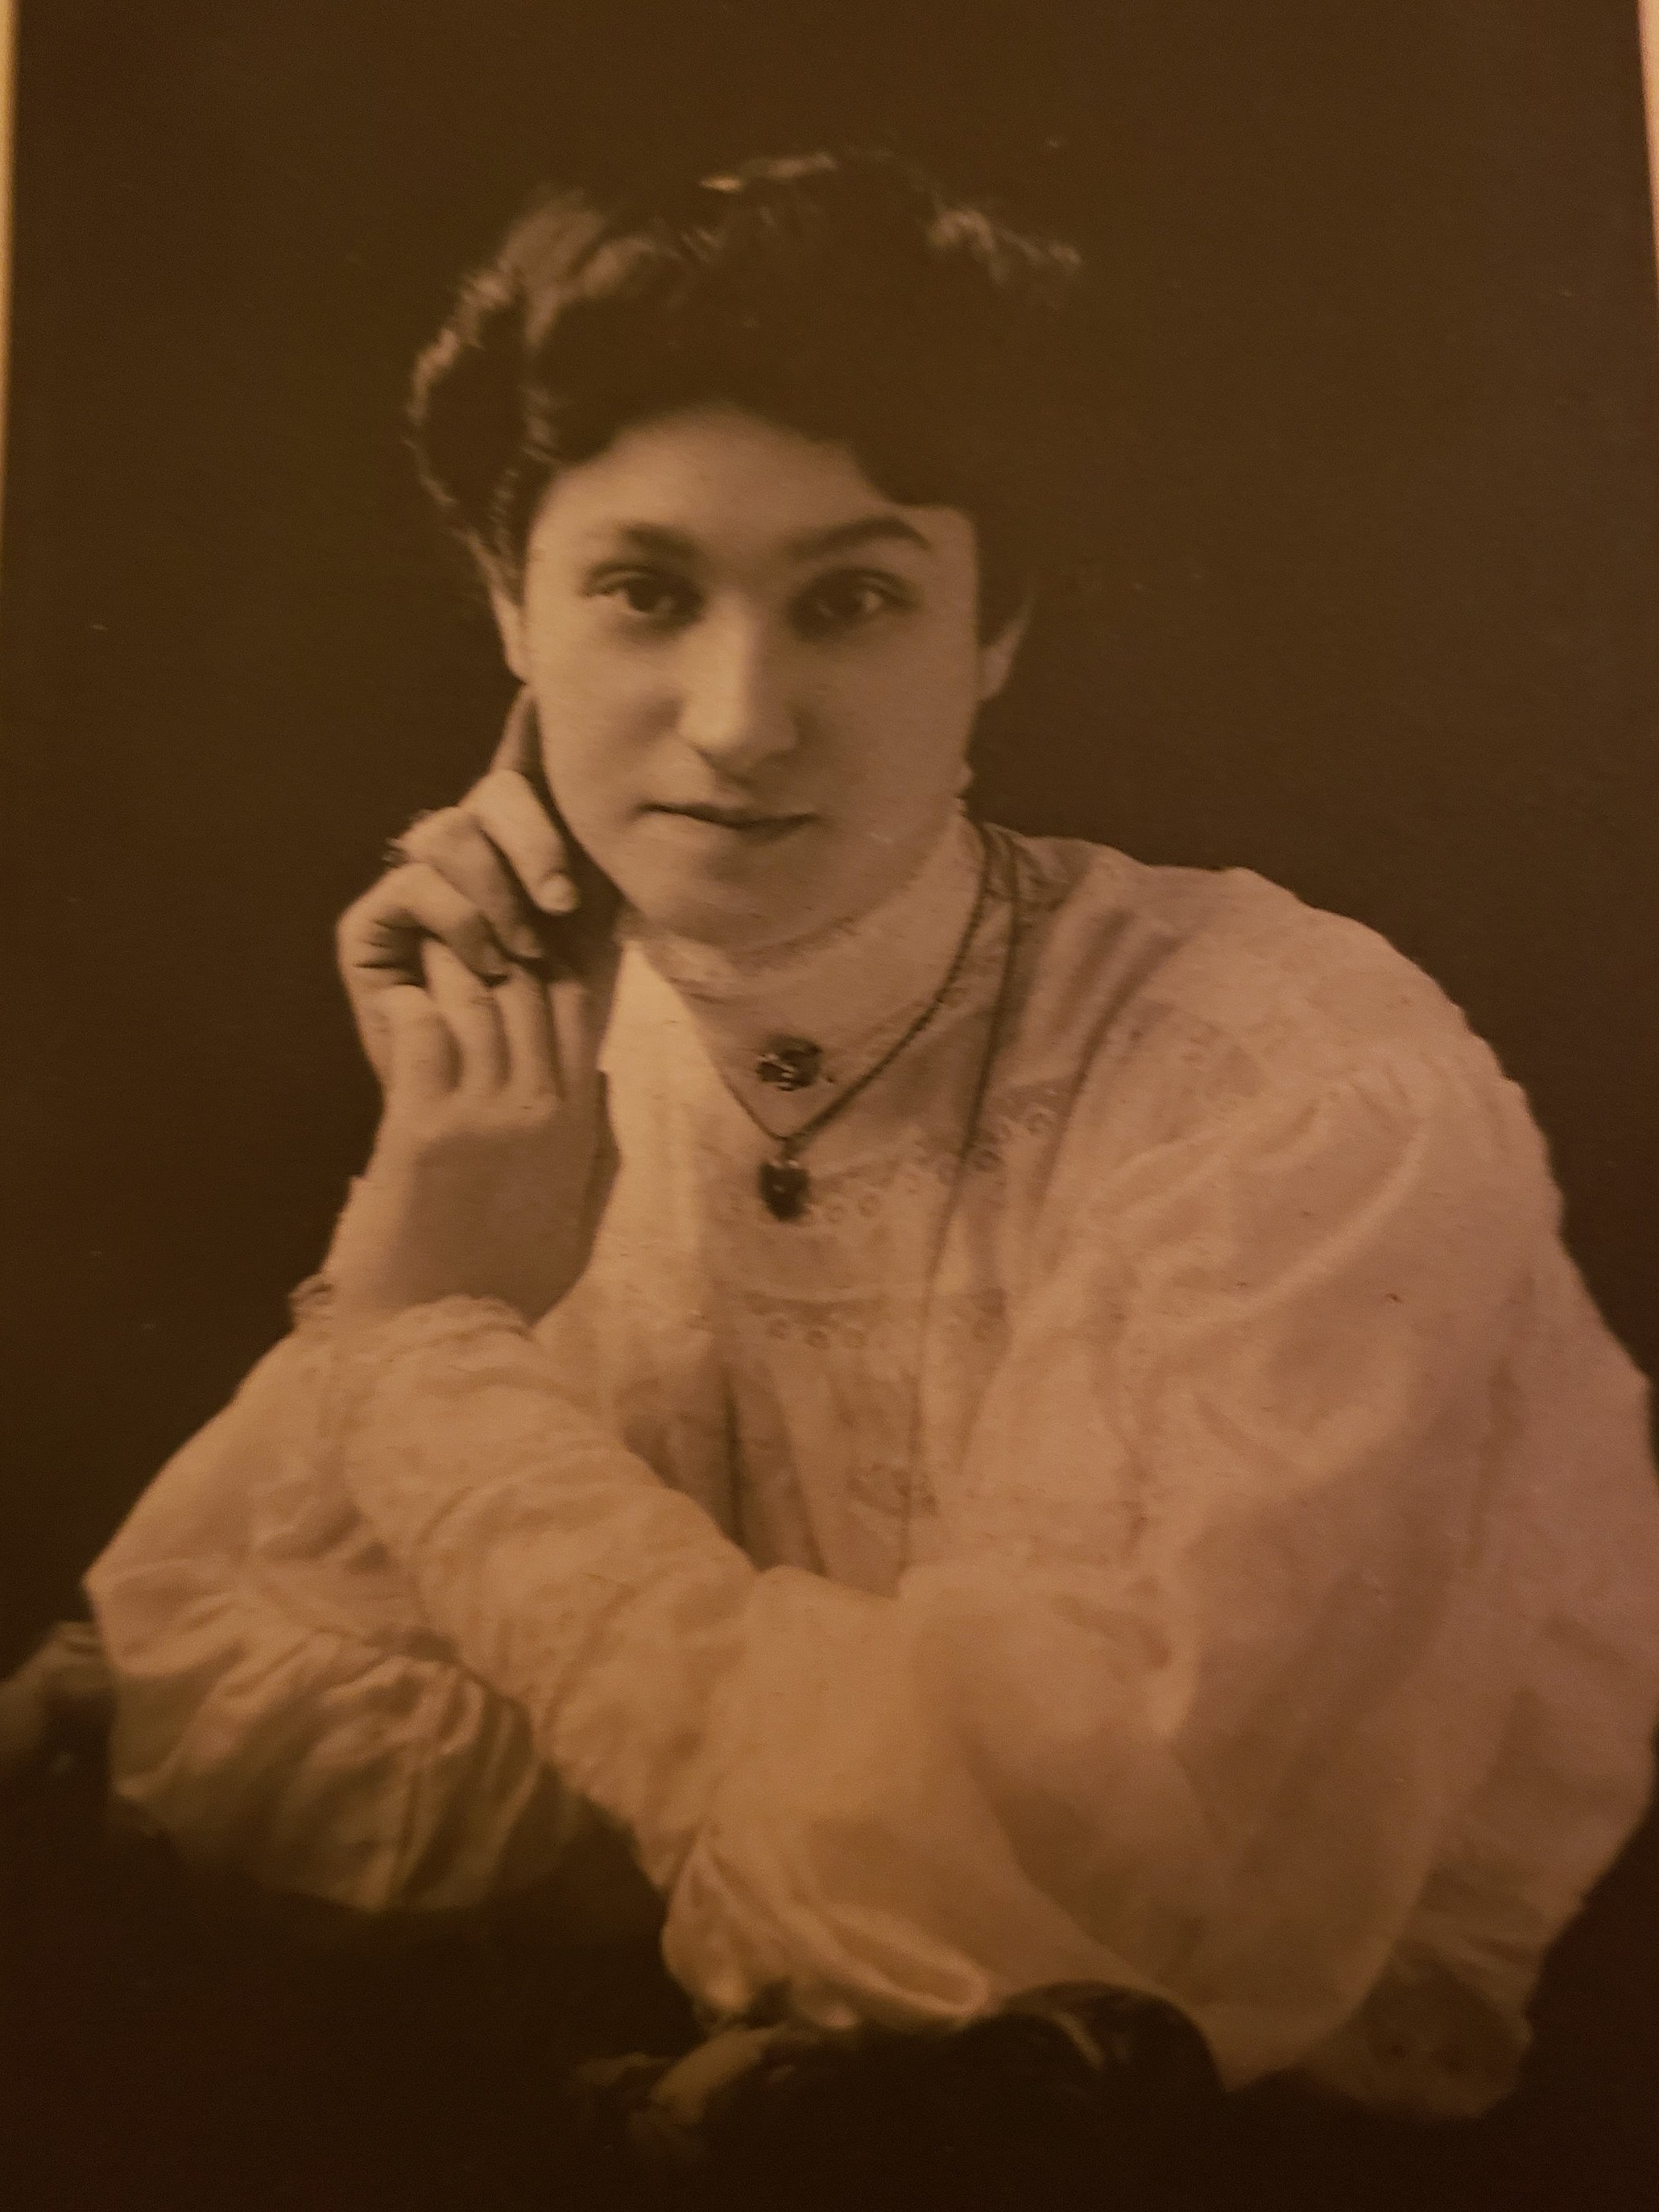 My maternal great-grandmother, Rachel, around the turn of the last century.